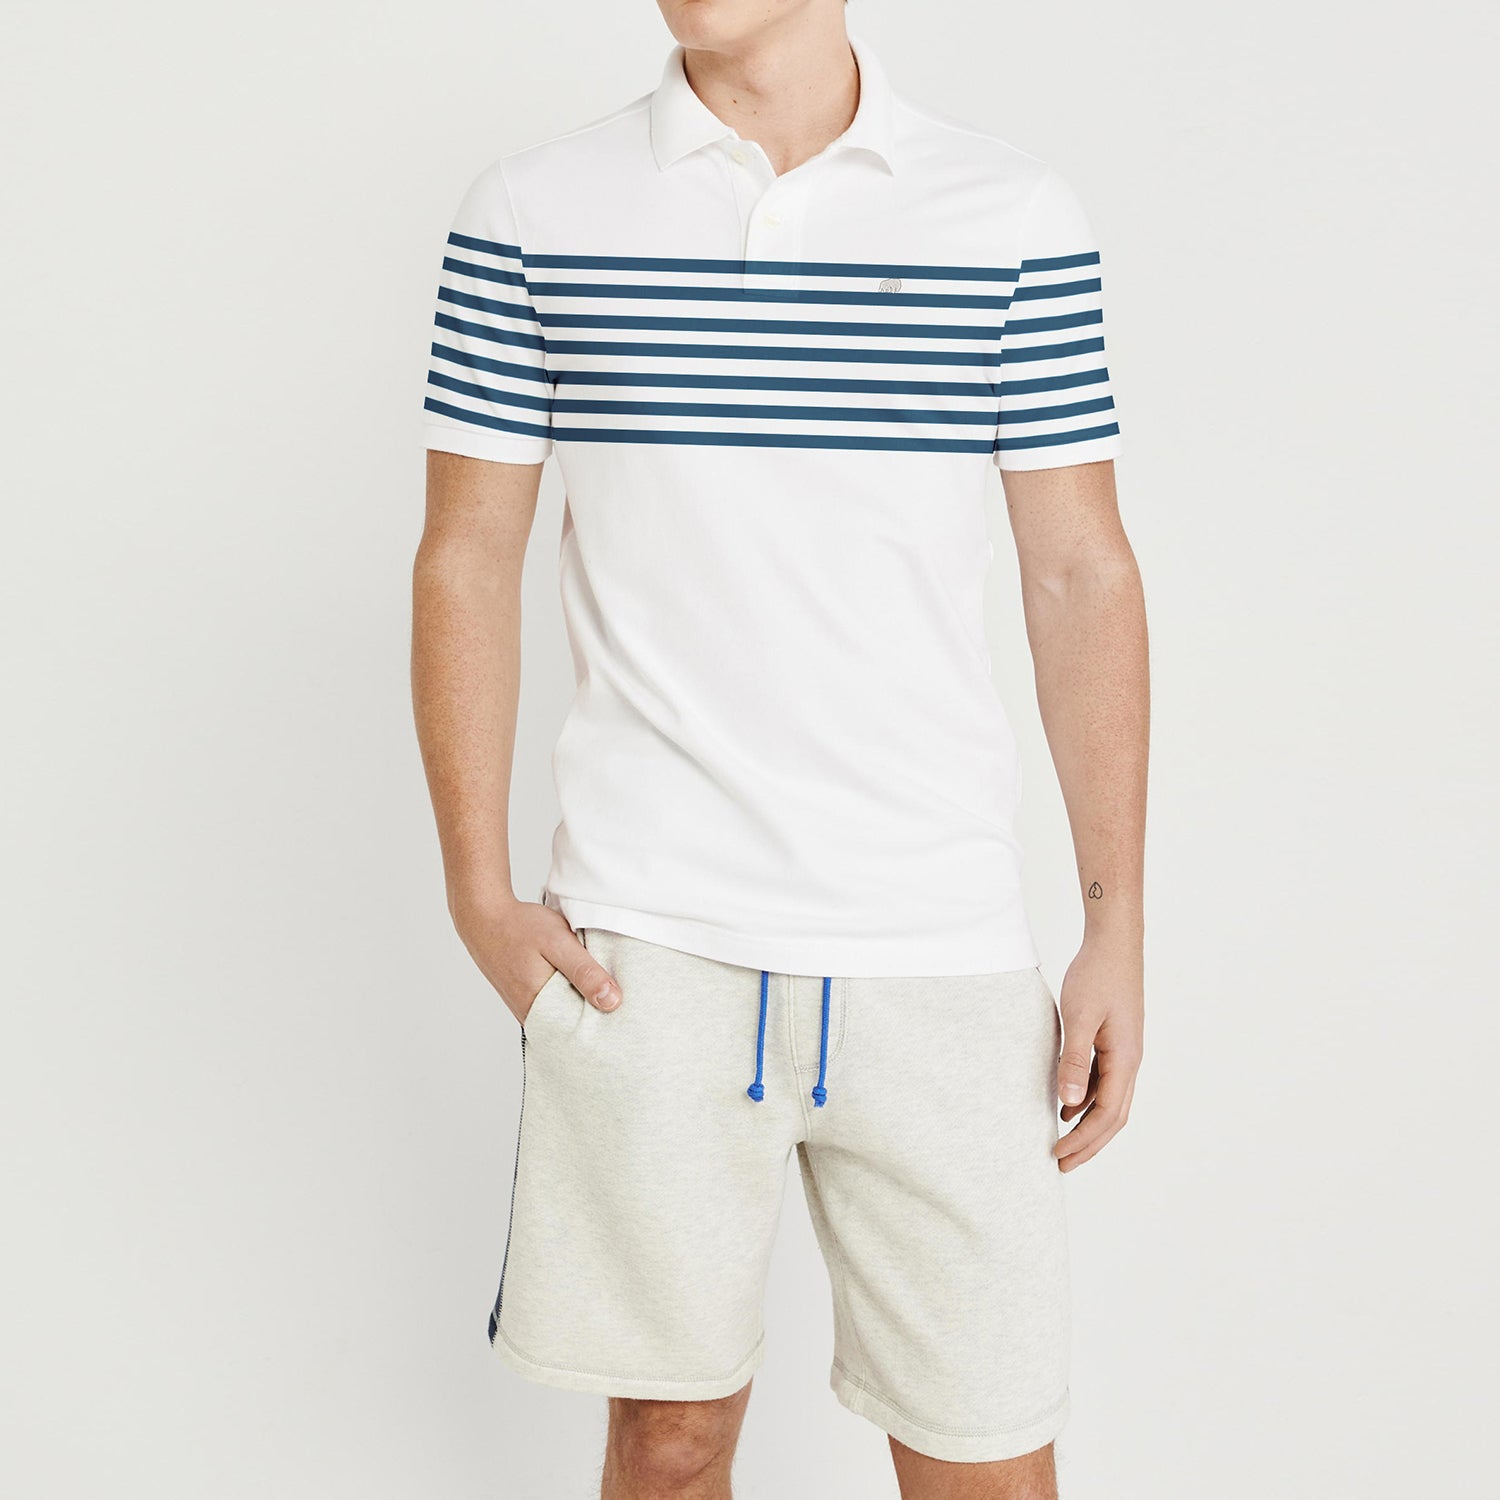 Banana Republic Short Sleeve P.Q Polo Shirt For Men-White With Blue Stripes-NA8089